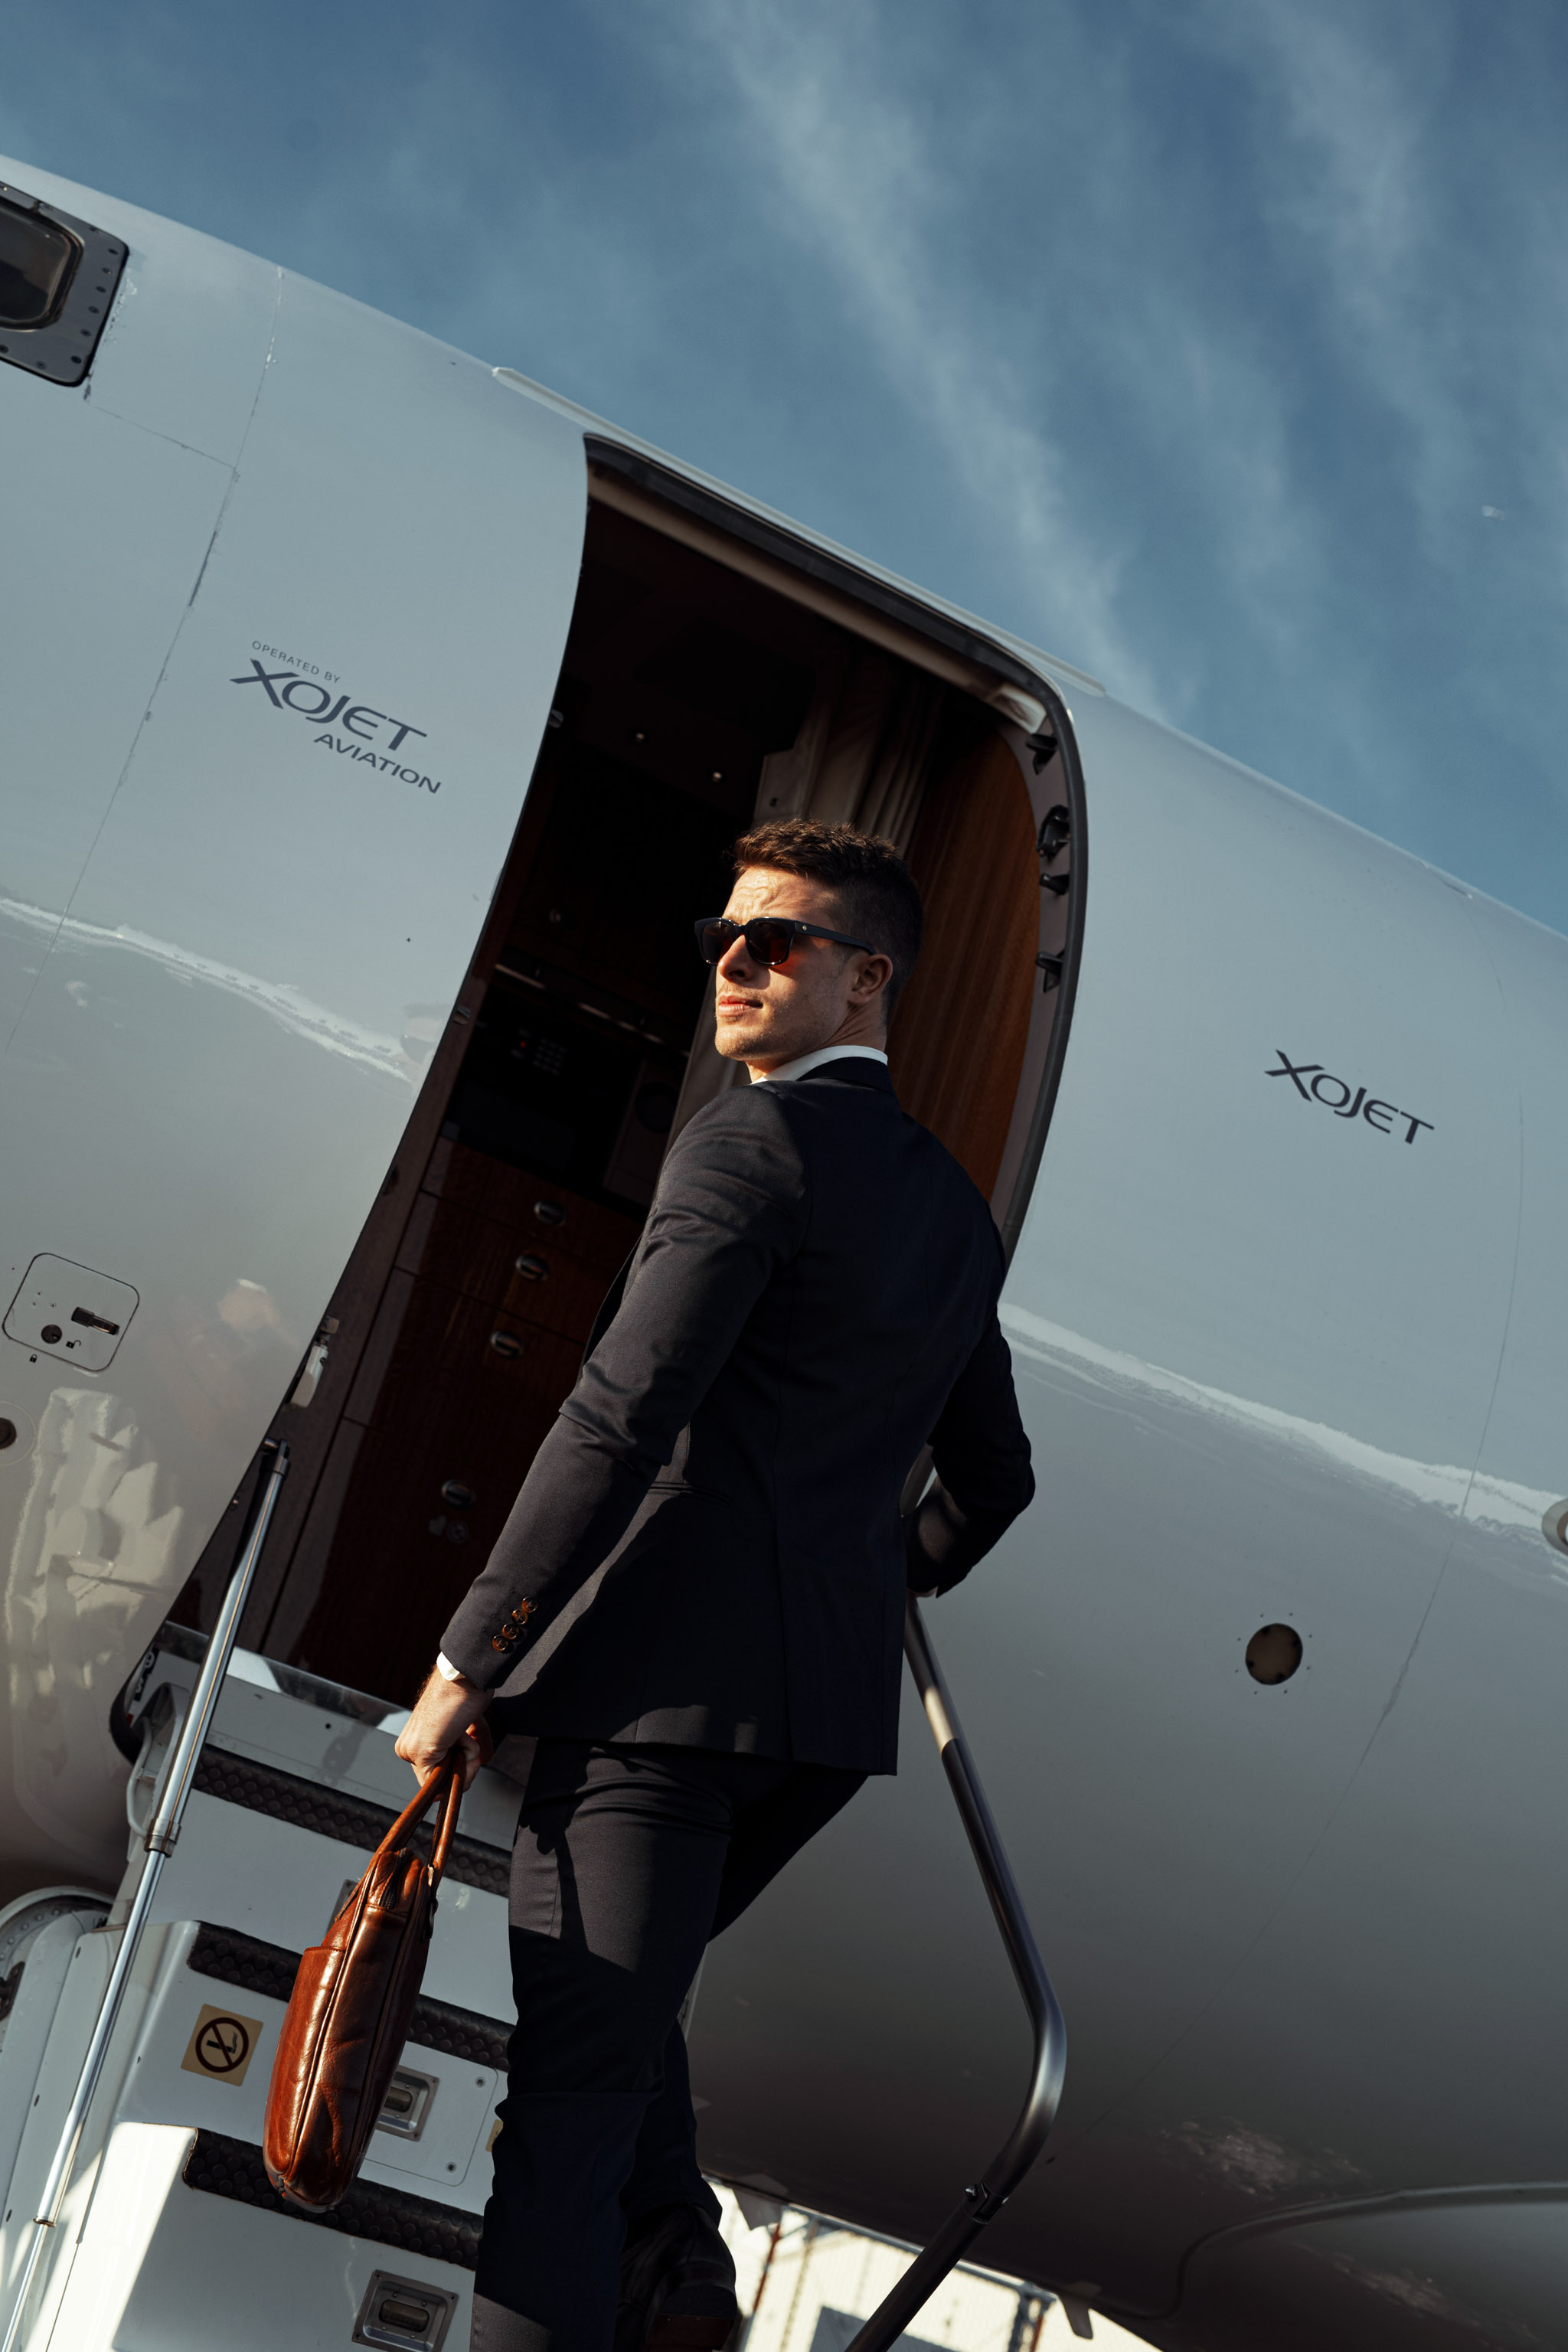 commercial photoshoot of entrepreneur arrived on private jet